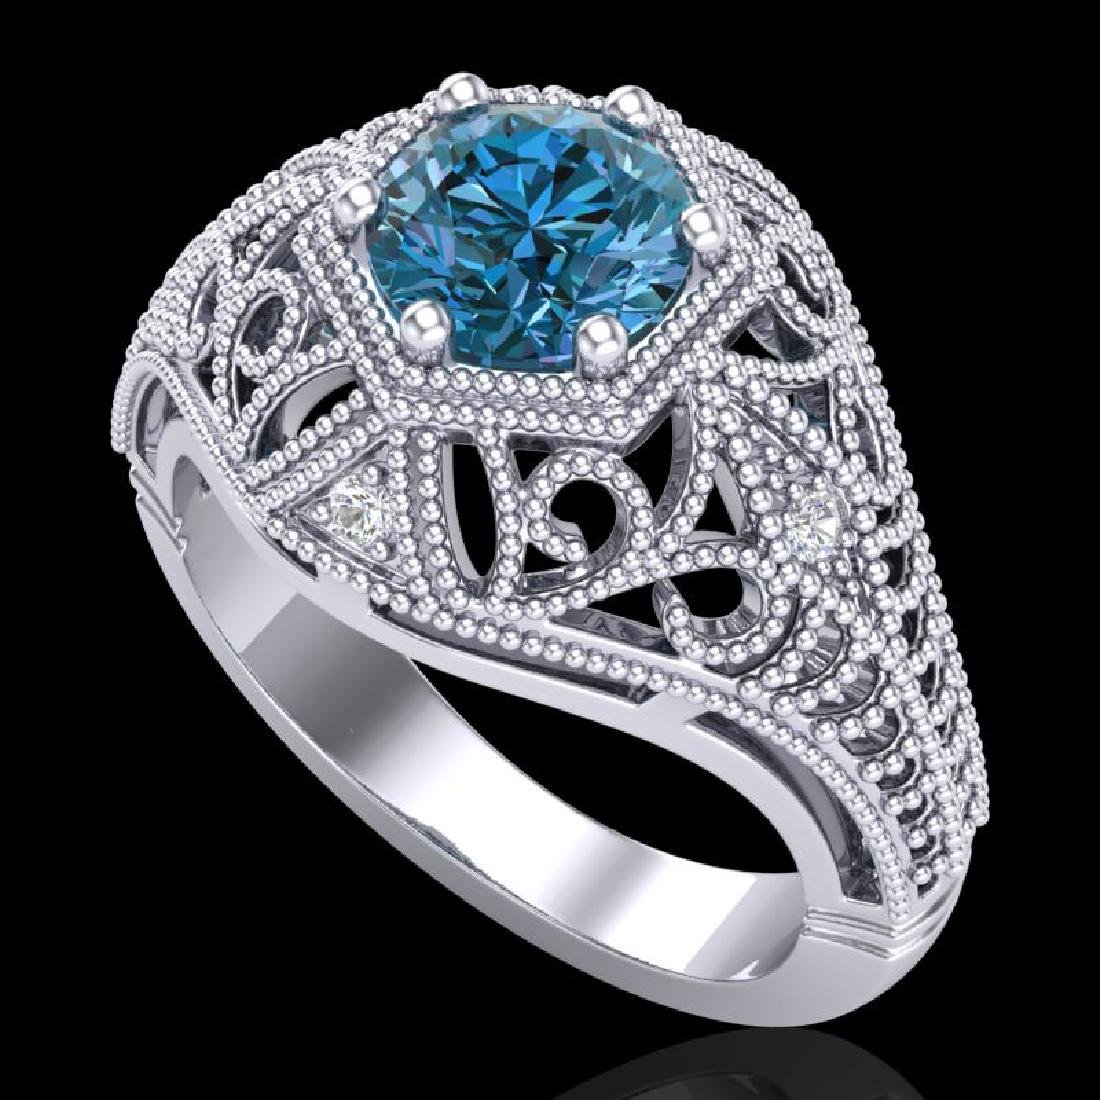 1.07 CTW Fancy Intense Blue Diamond Solitaire Art Deco